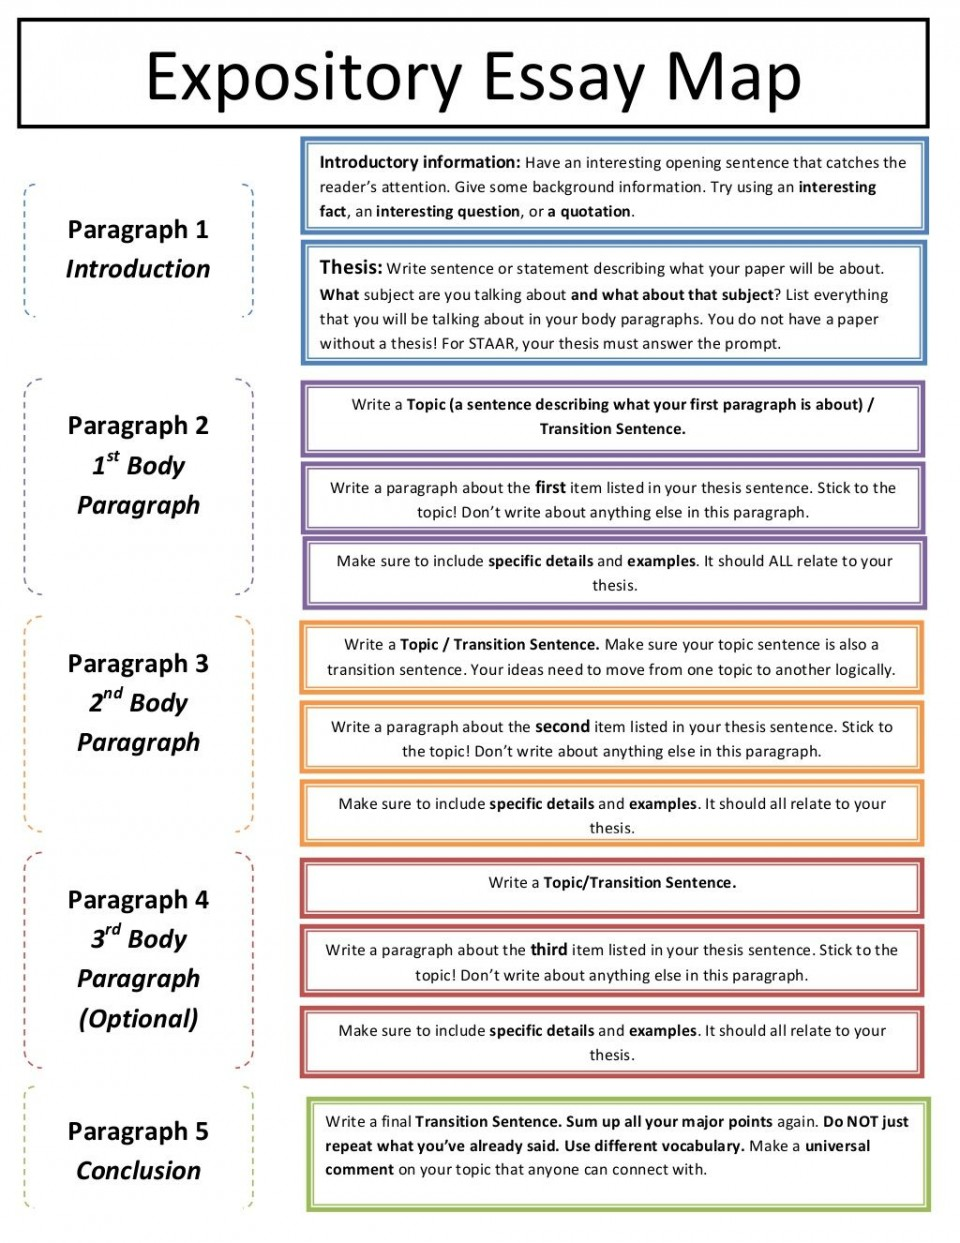 015 Essay Example Formidable Map Pictorial Pdf Outline 960